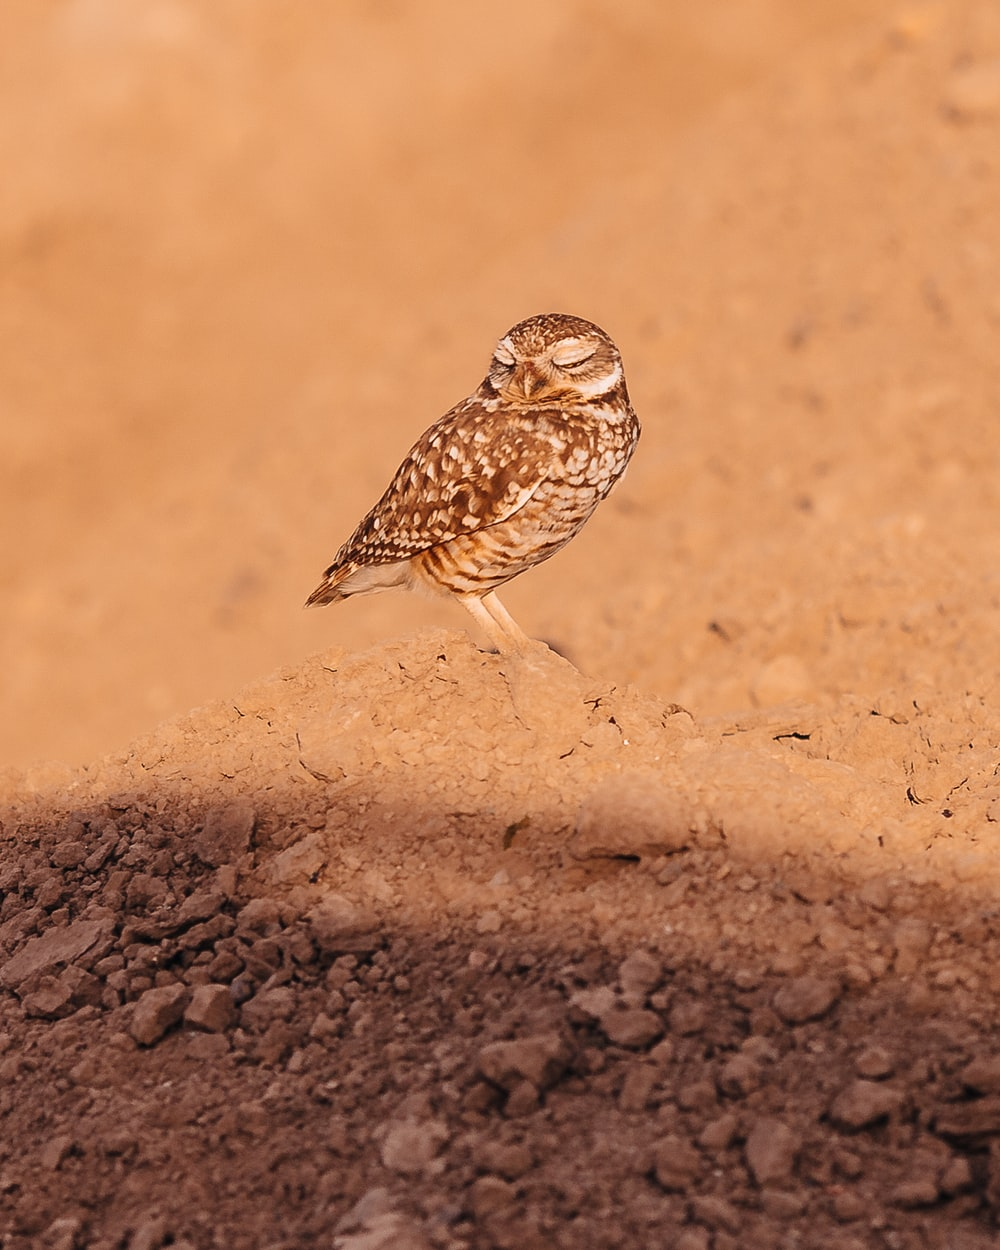 brown and white owl on brown sand during daytime